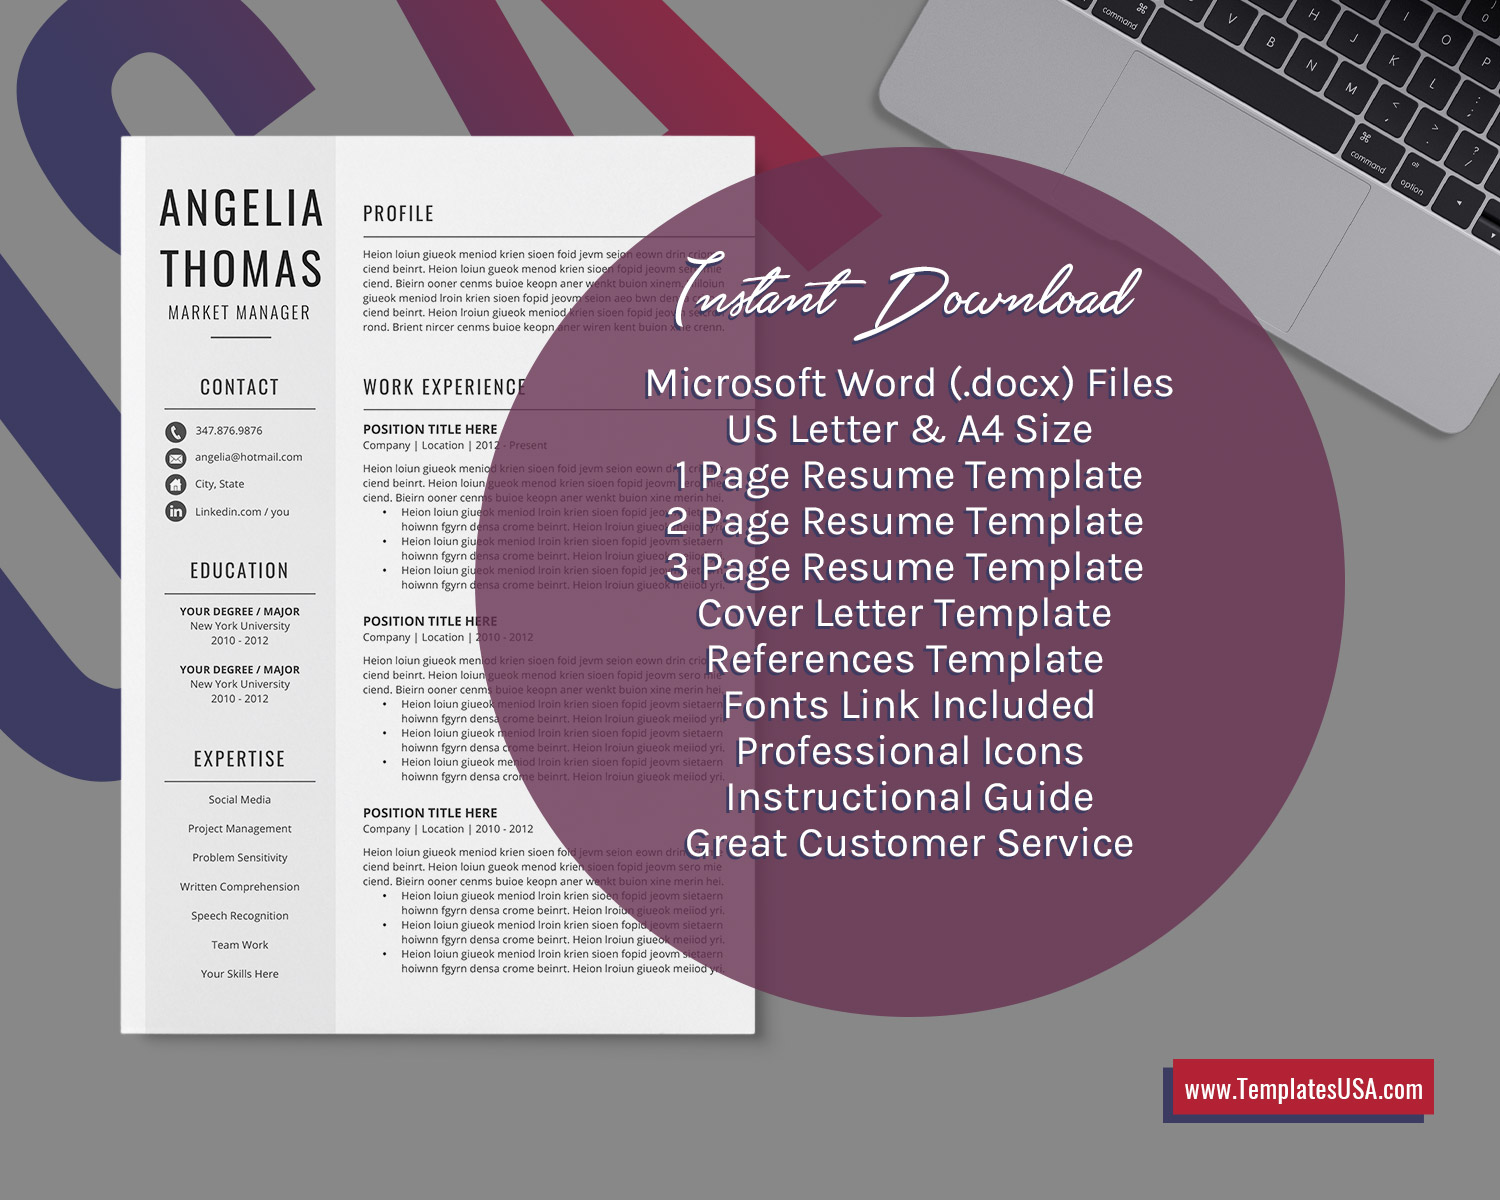 Minimalist Resume Template For Ms Word Simple Cv Template Design Curriculum Vitae Modern Cv Format Professional And Creative Resume 1 3 Page Resume Job Resume Instant Download Templatesusa Com